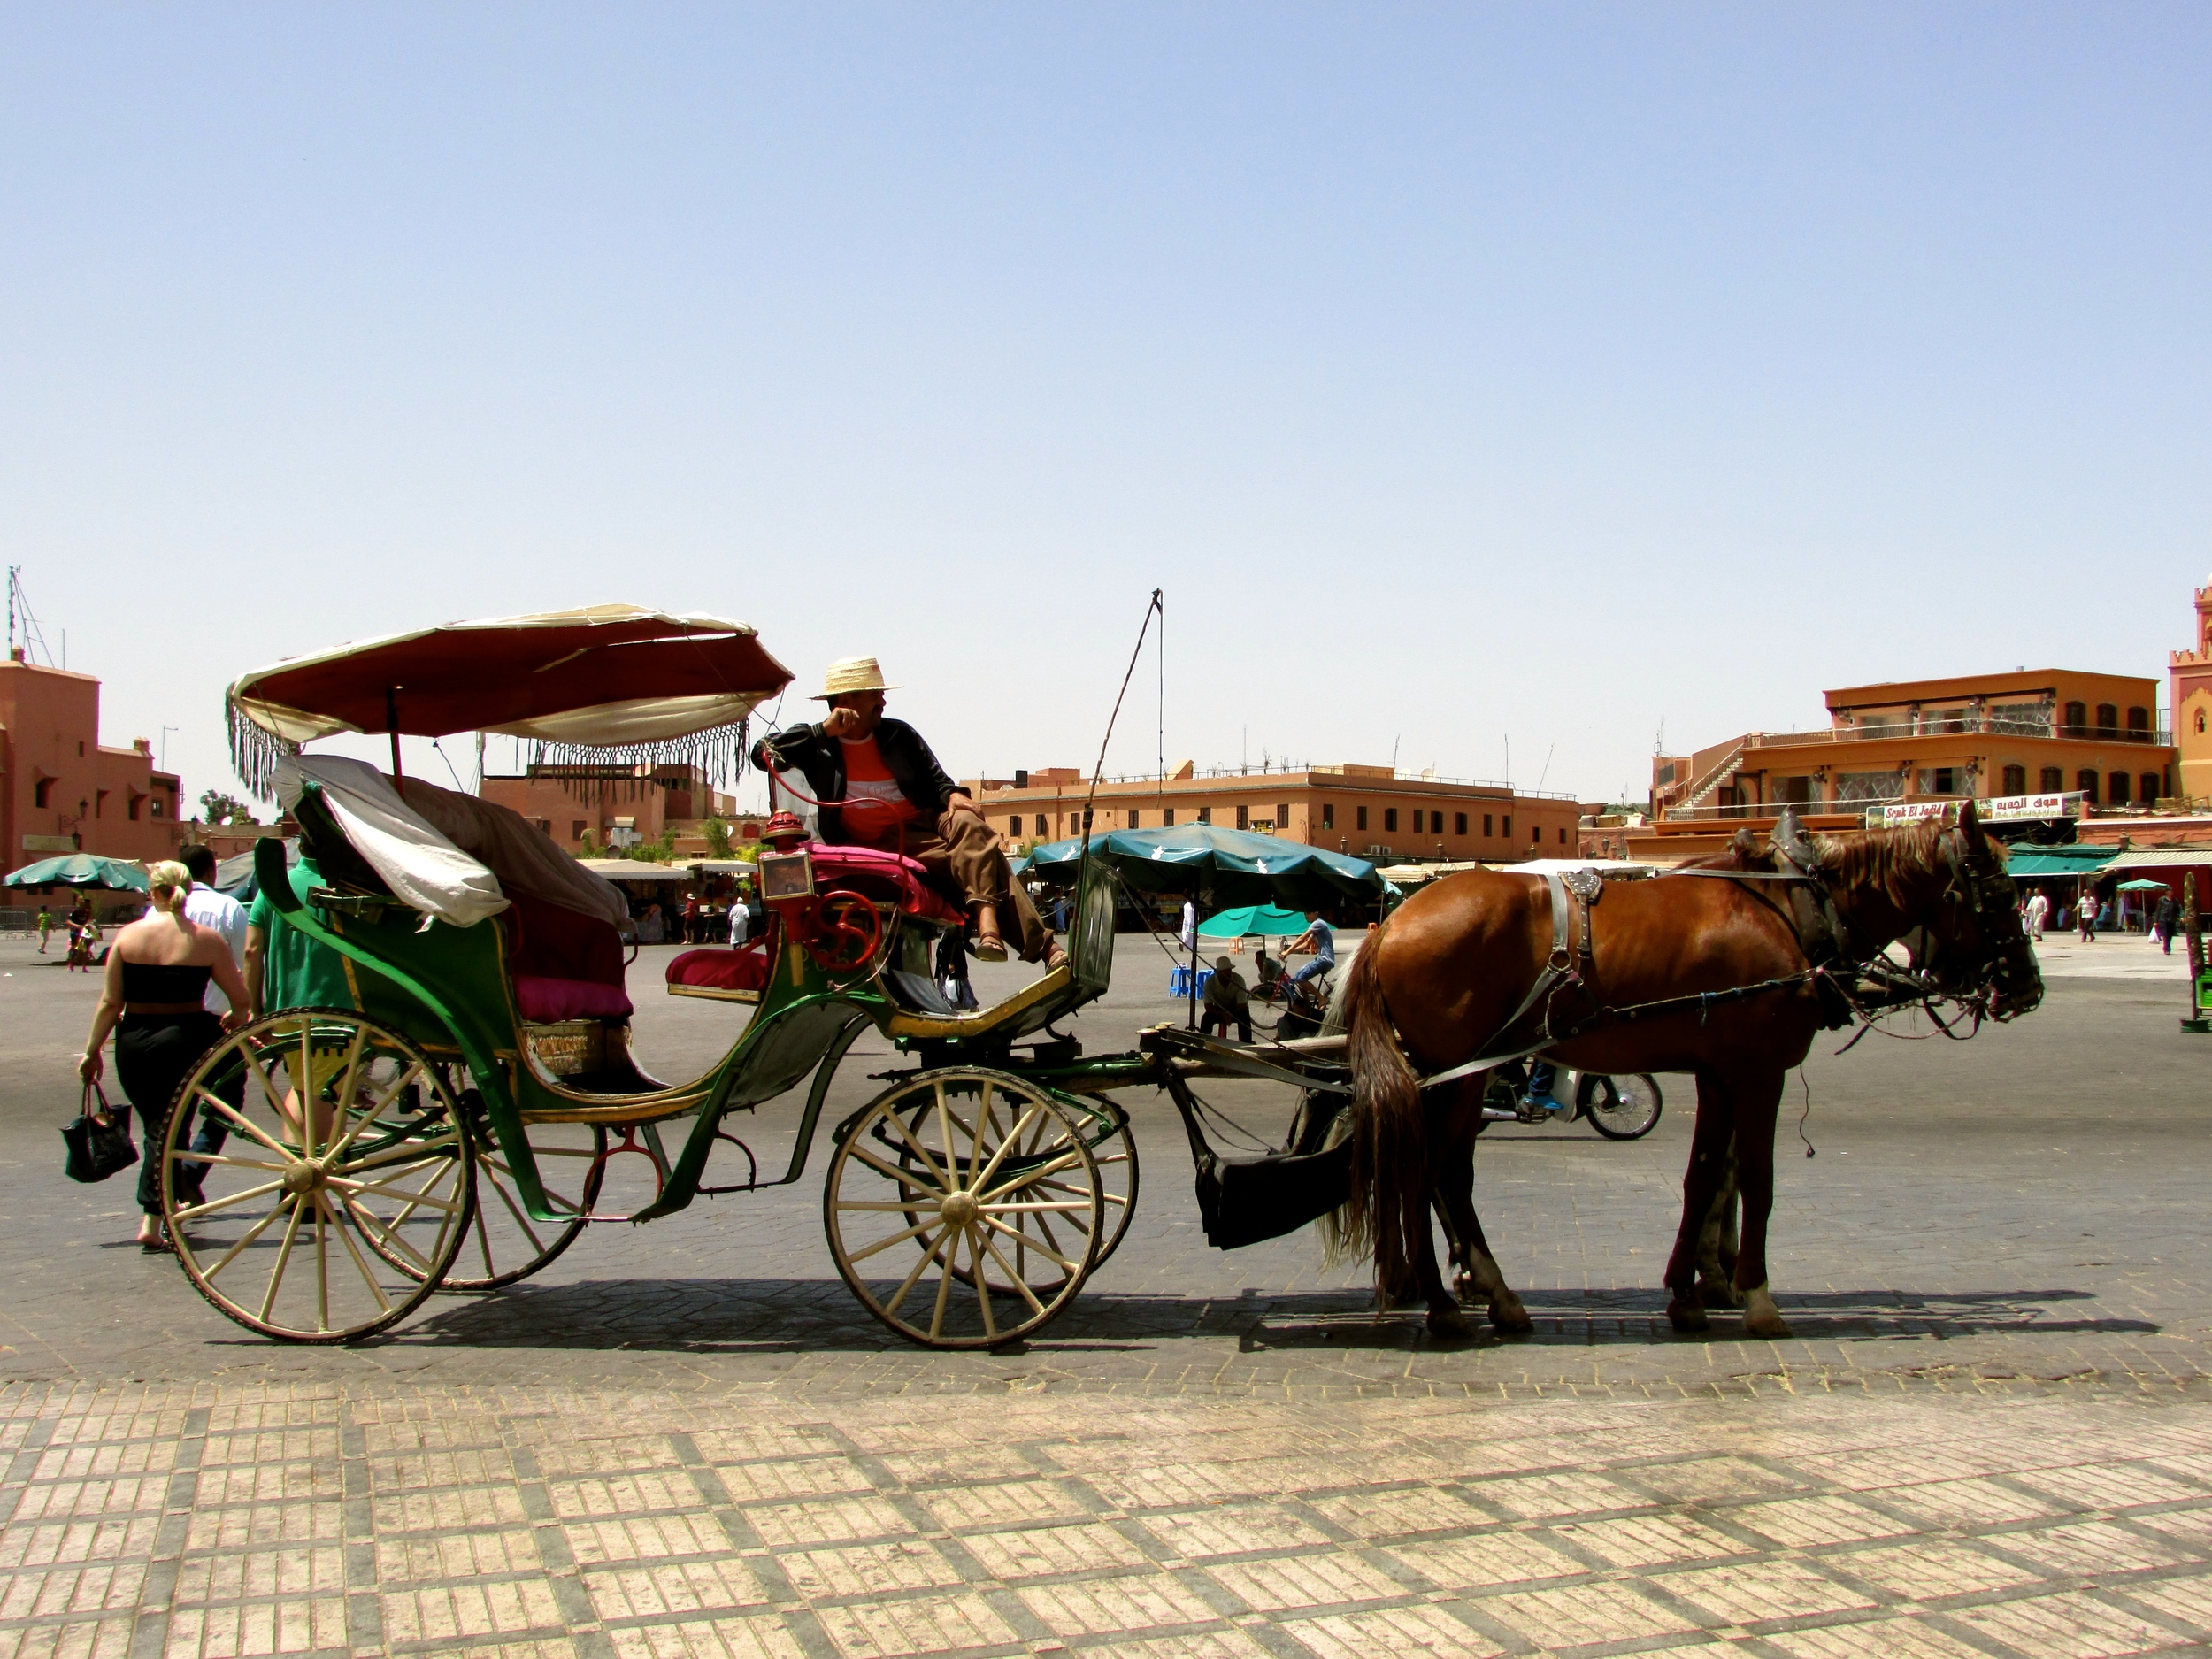 Horse drawn carriage for rent in Marrakech, Morocco